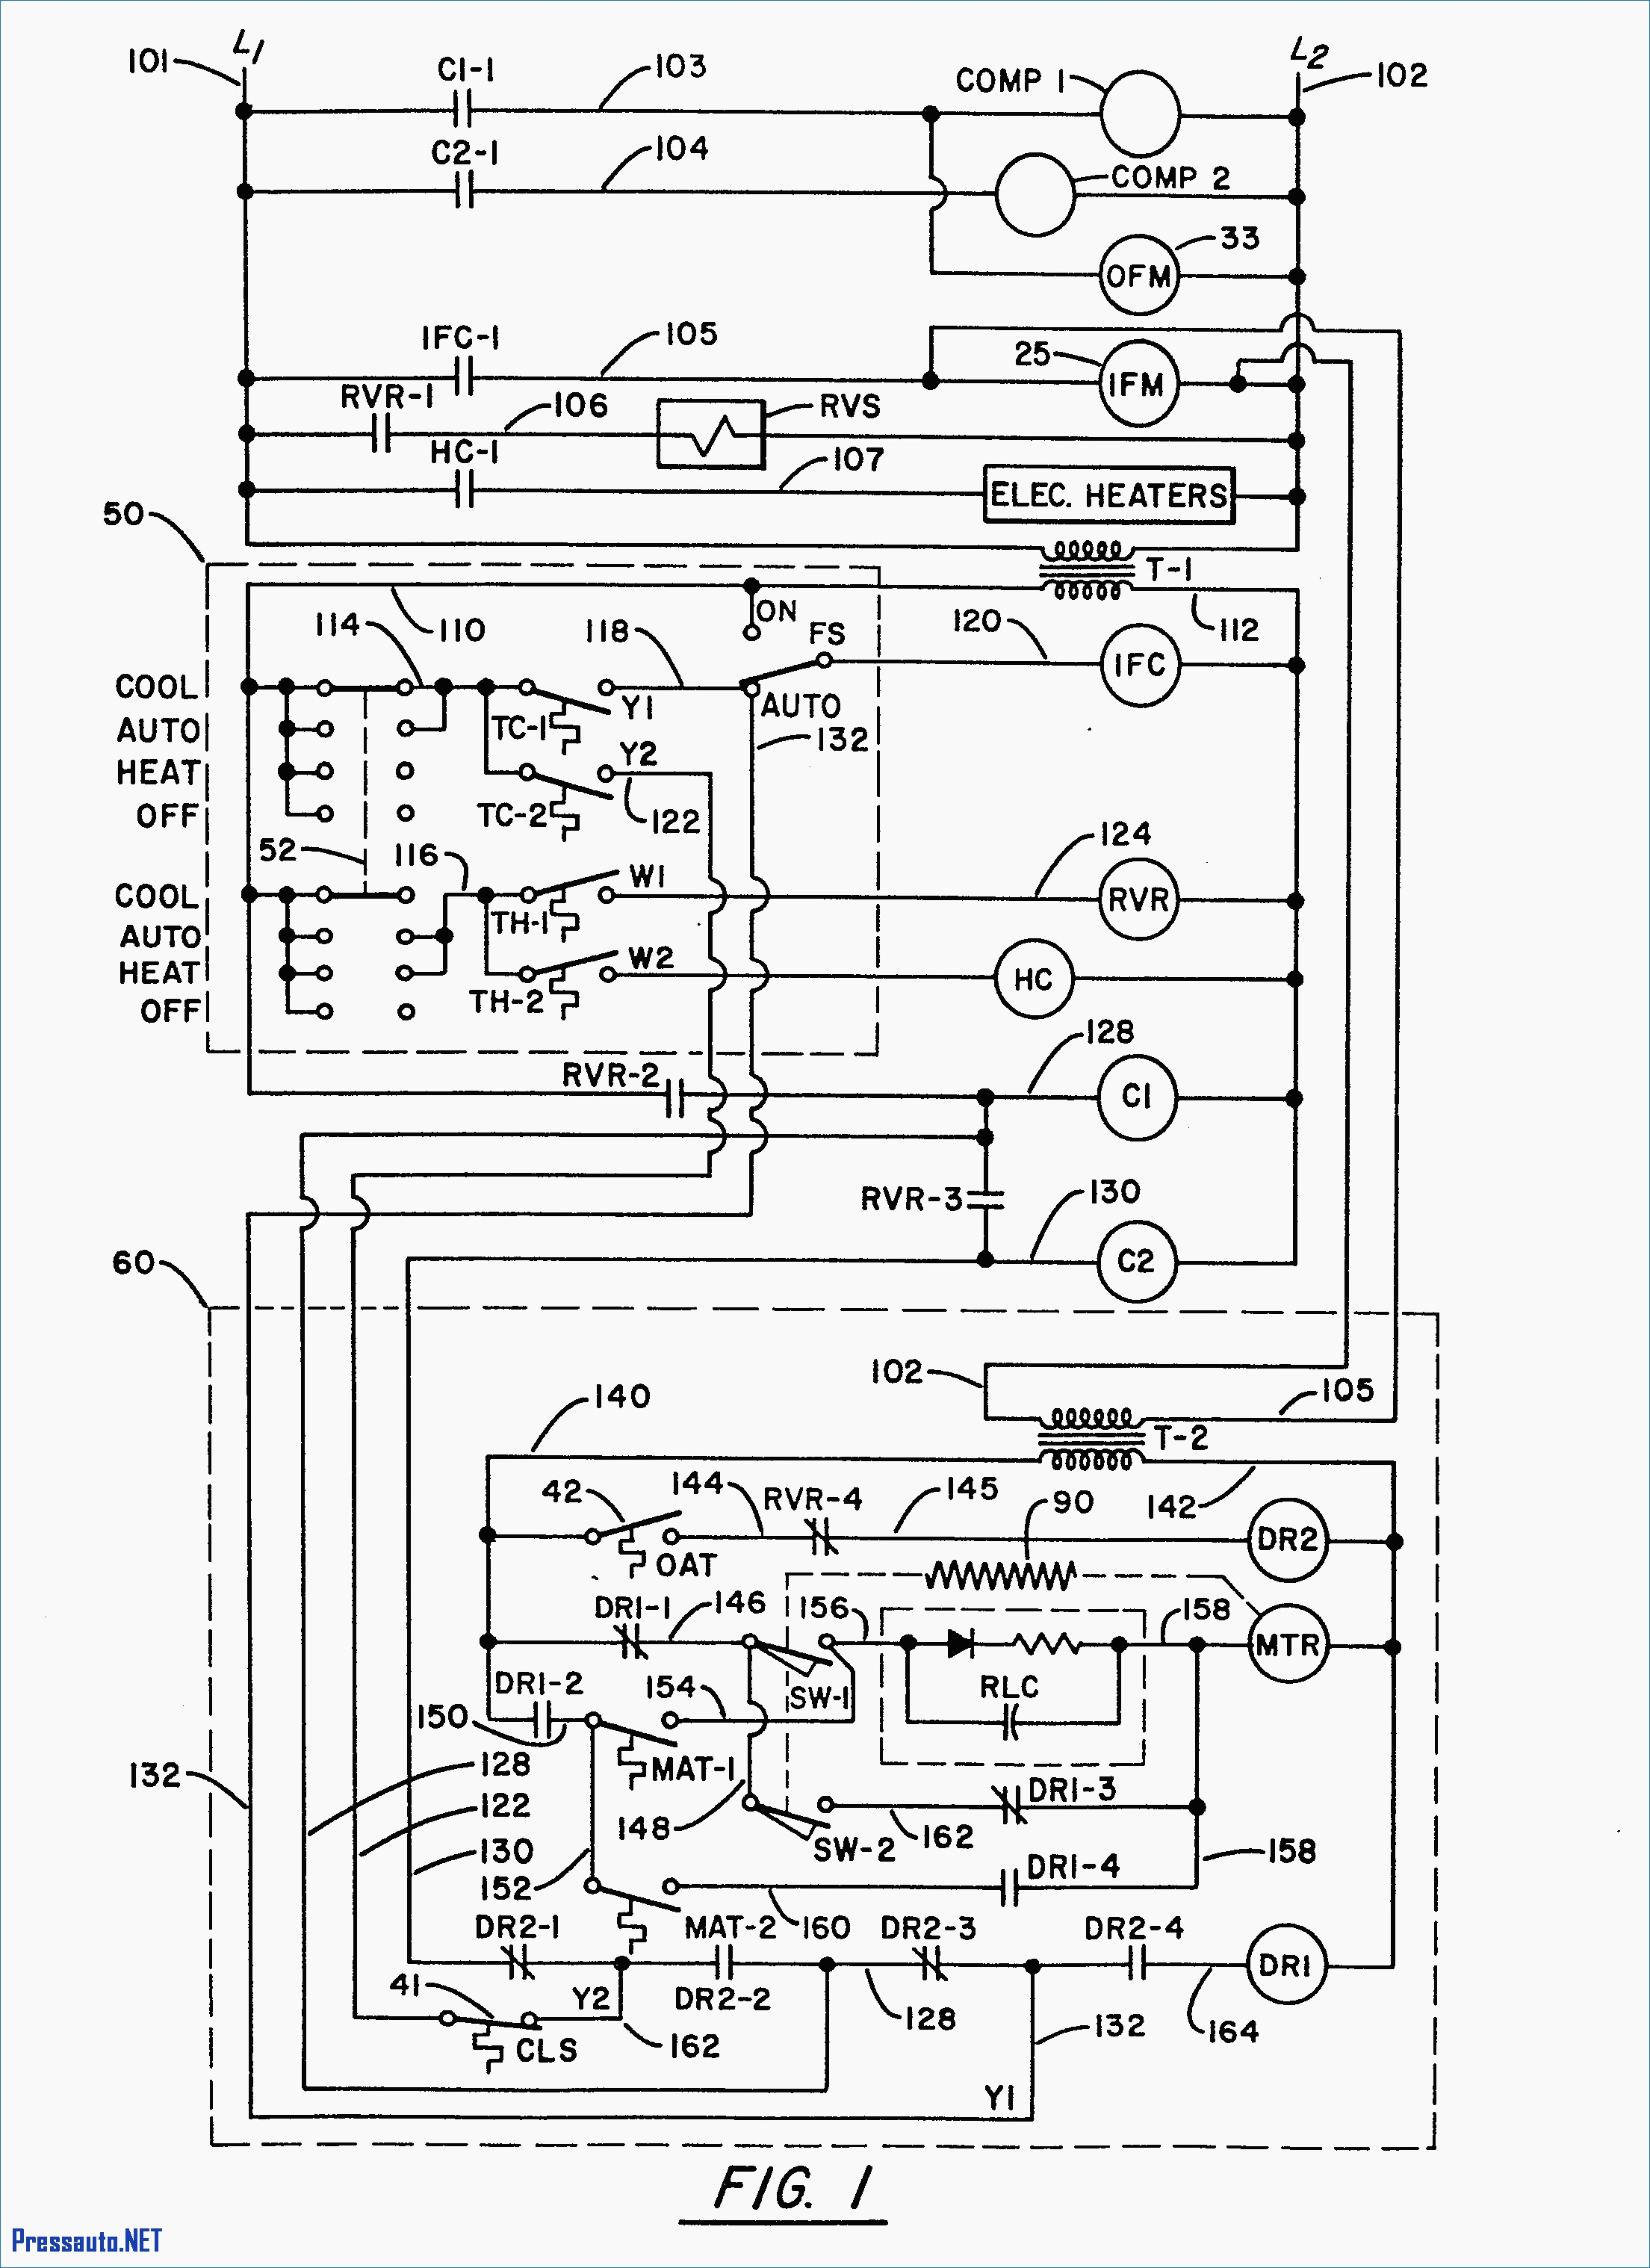 Wiring Diagram For Condensing Unit Carrier Air Conditioner Diagrams Conditioning Basic Of